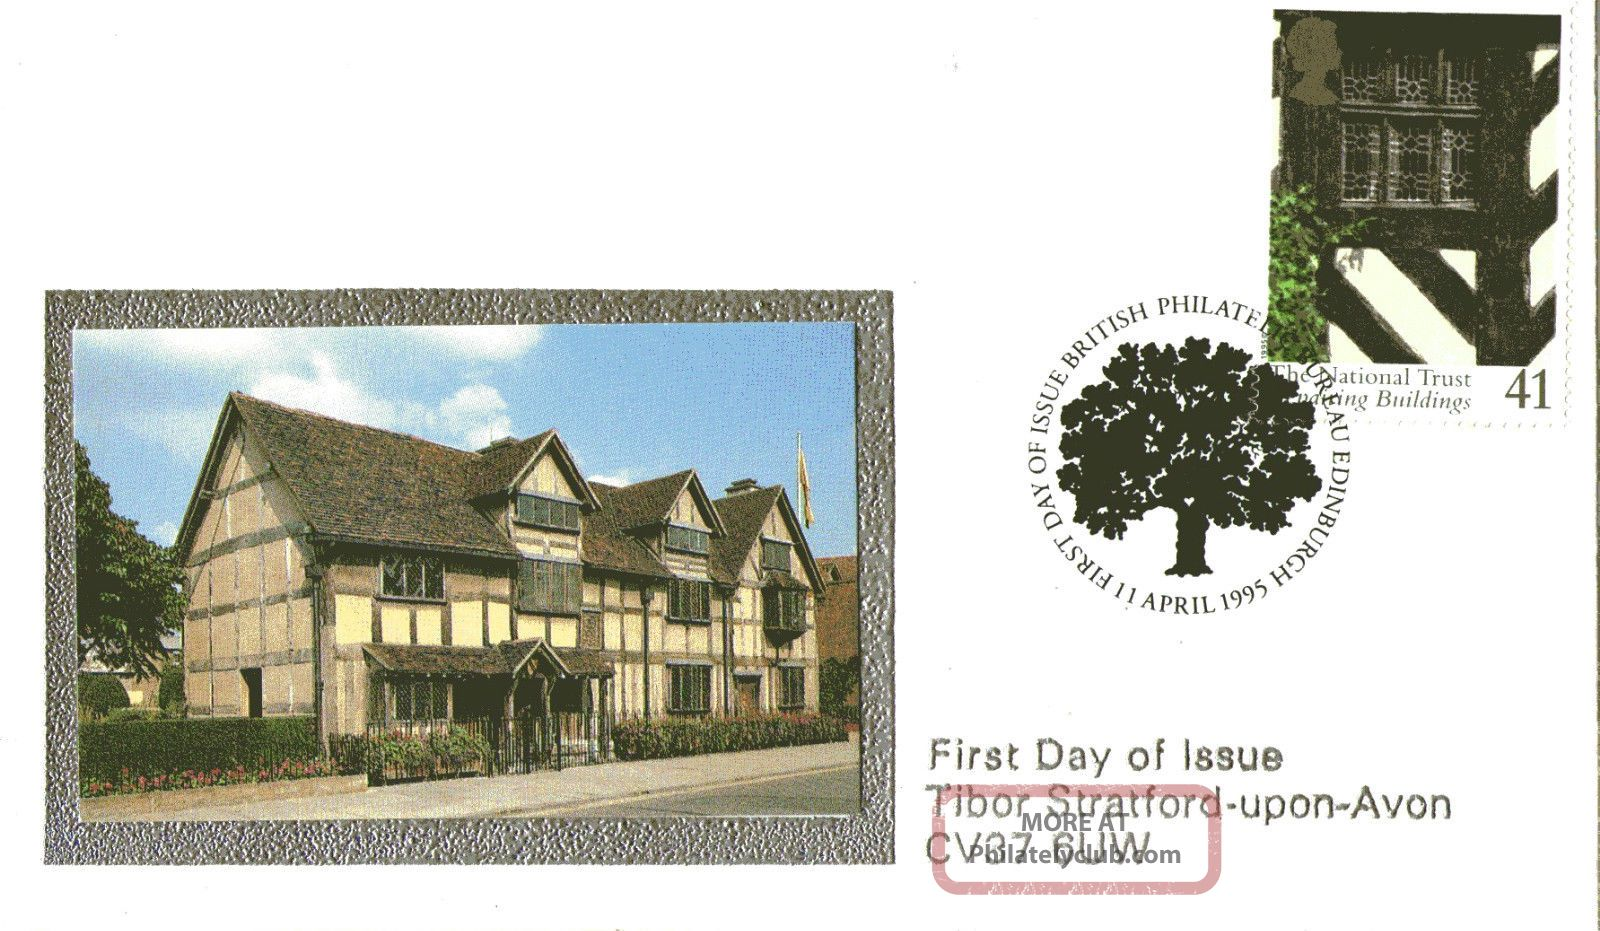 11 April 1995 National Trust Cover Bureau Shs Topical Stamps photo